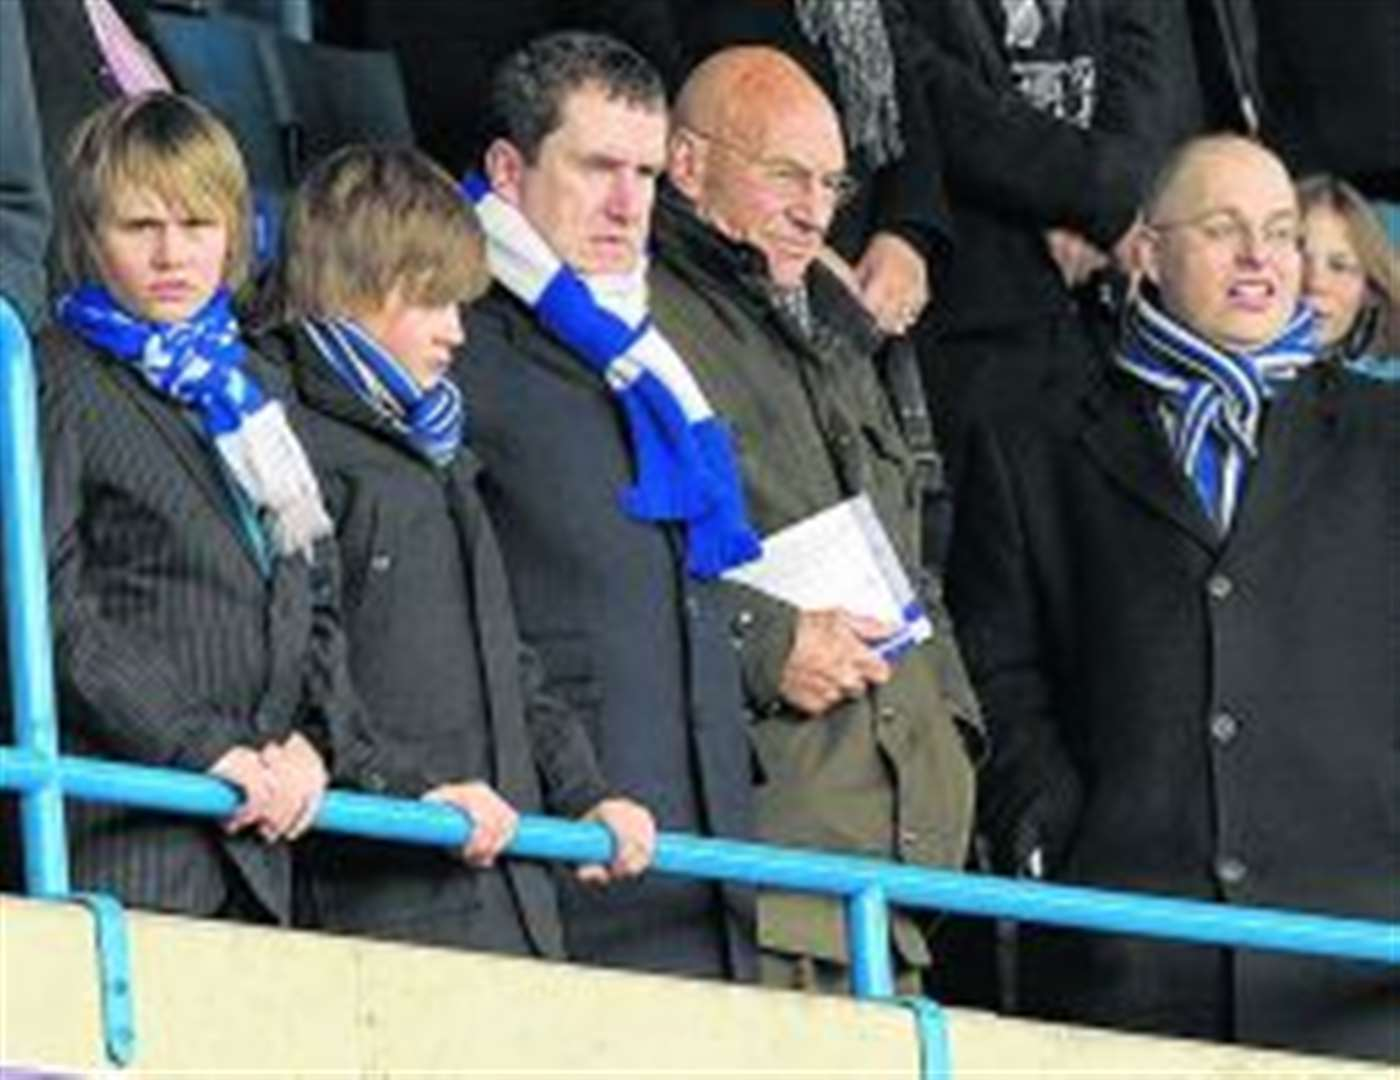 Top actor at Gills game